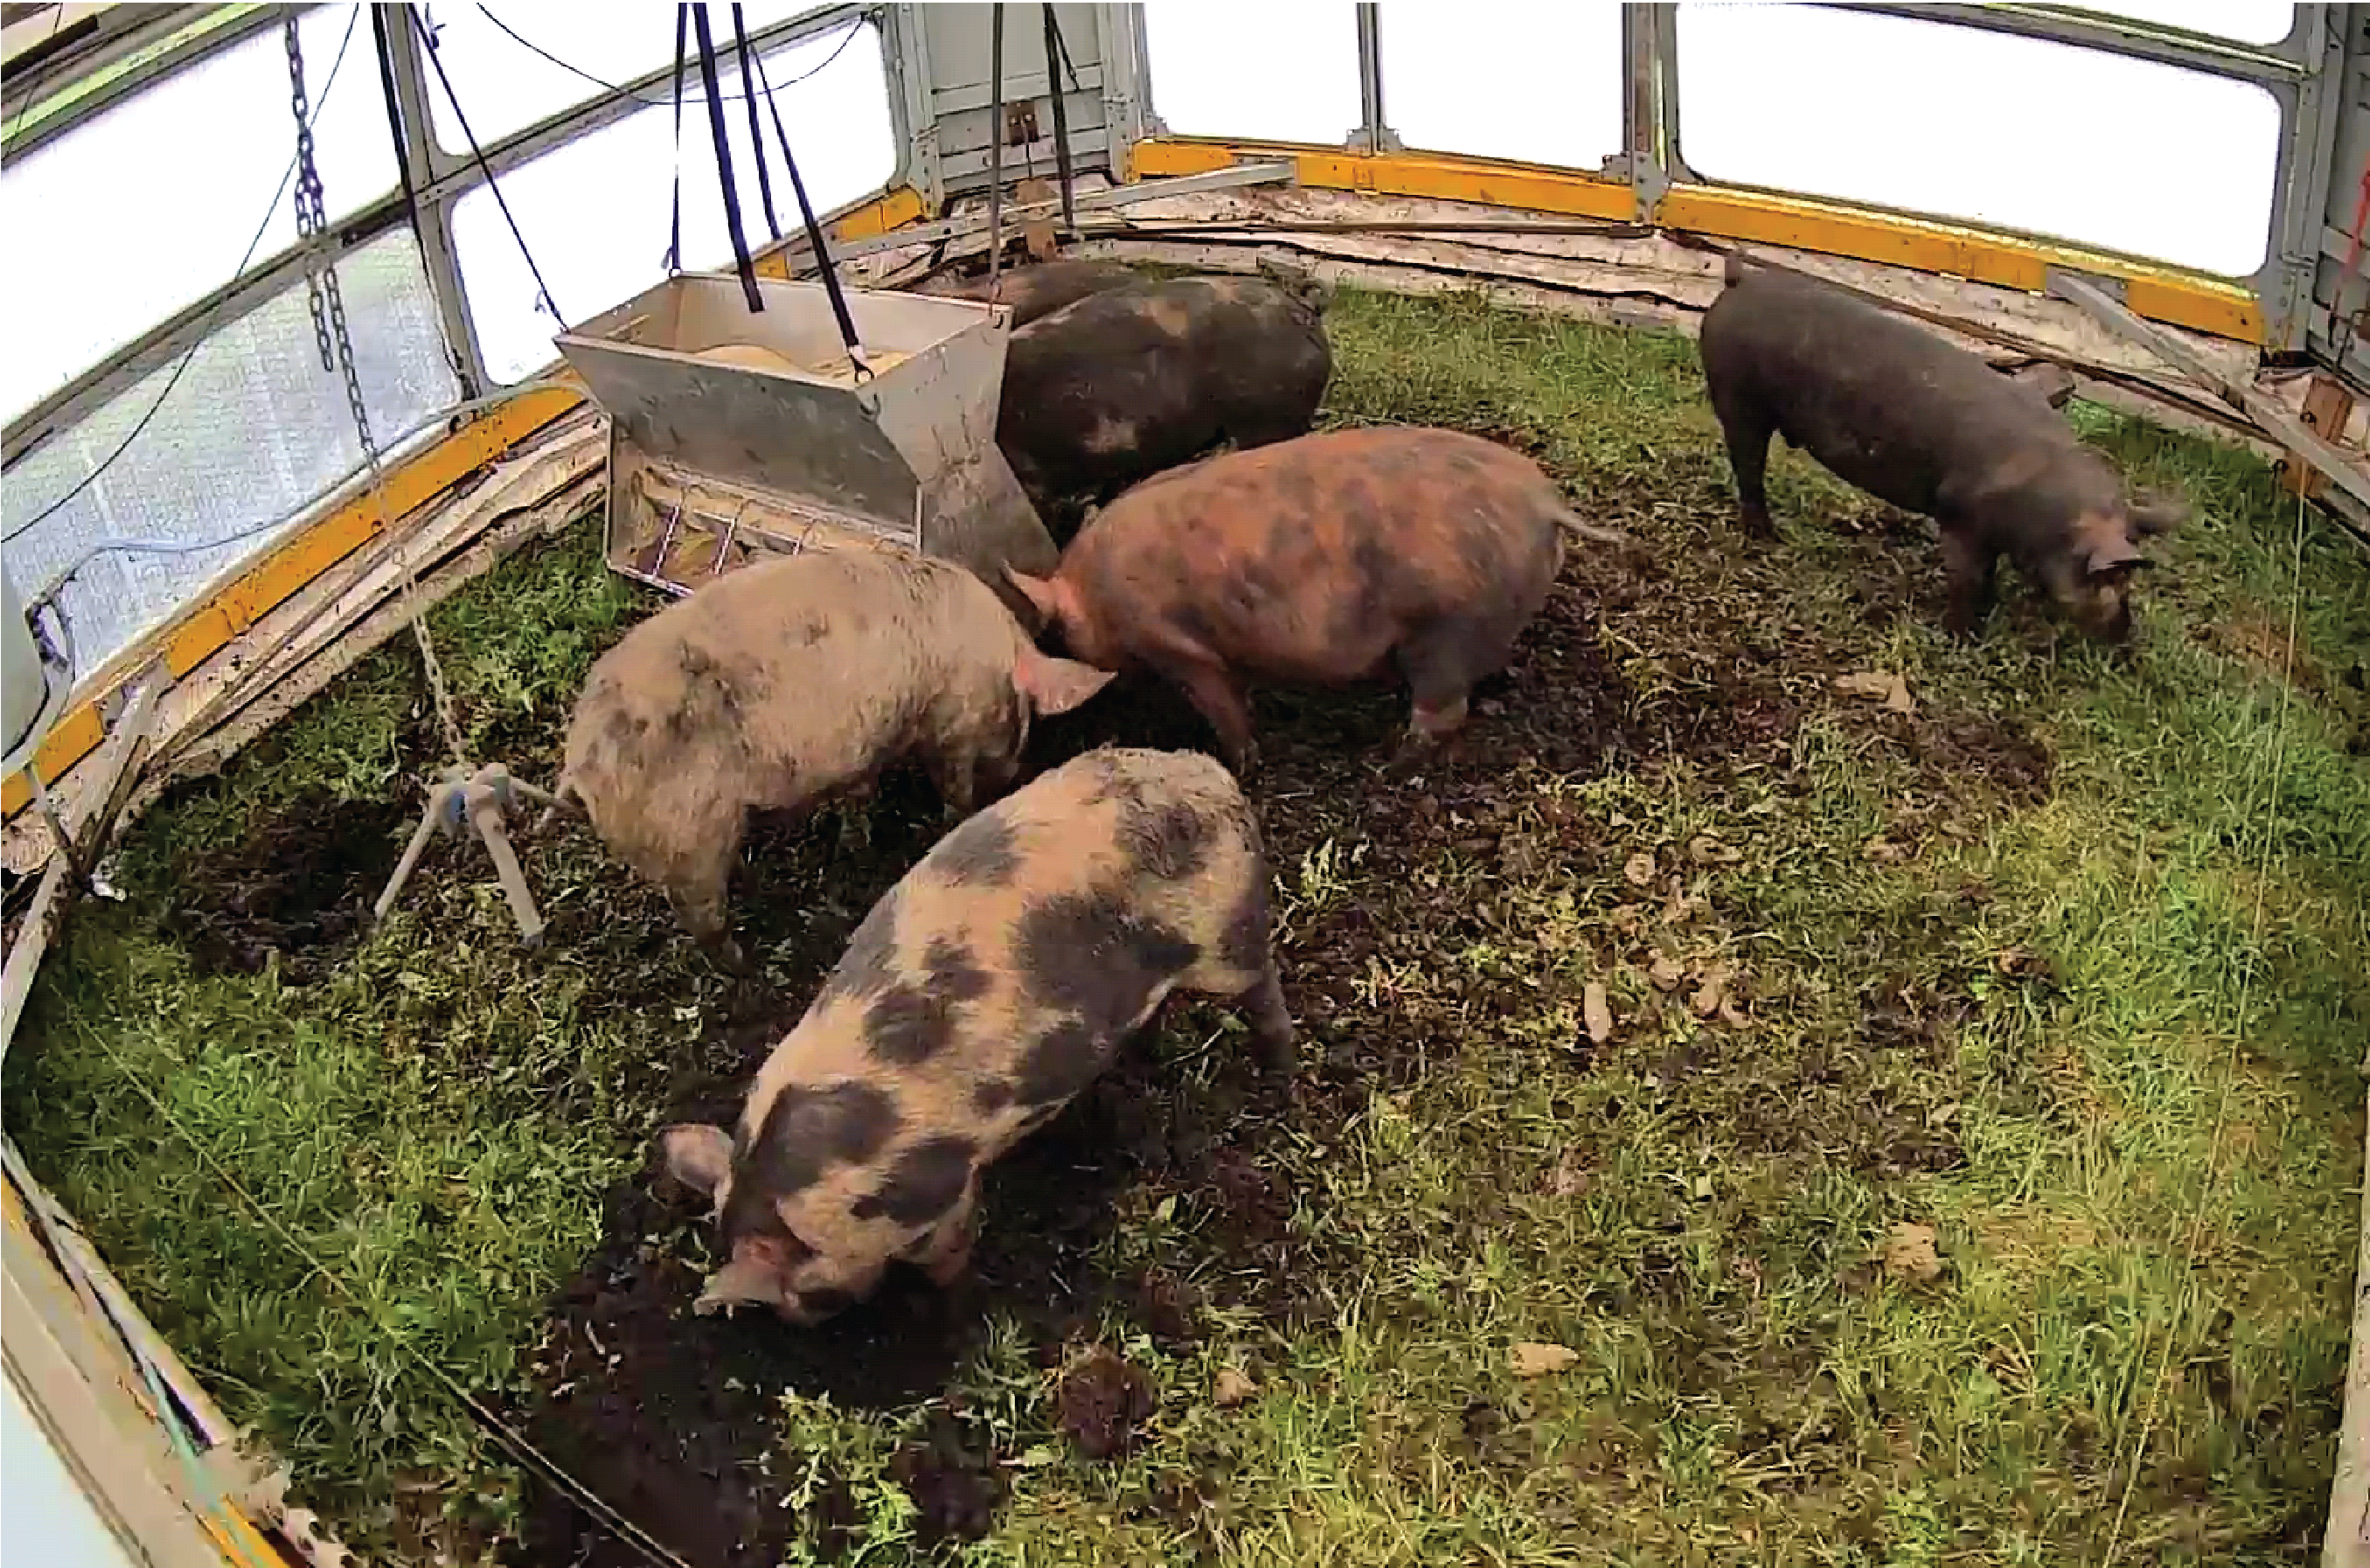 Pigs on the move: Self-driving pig houses